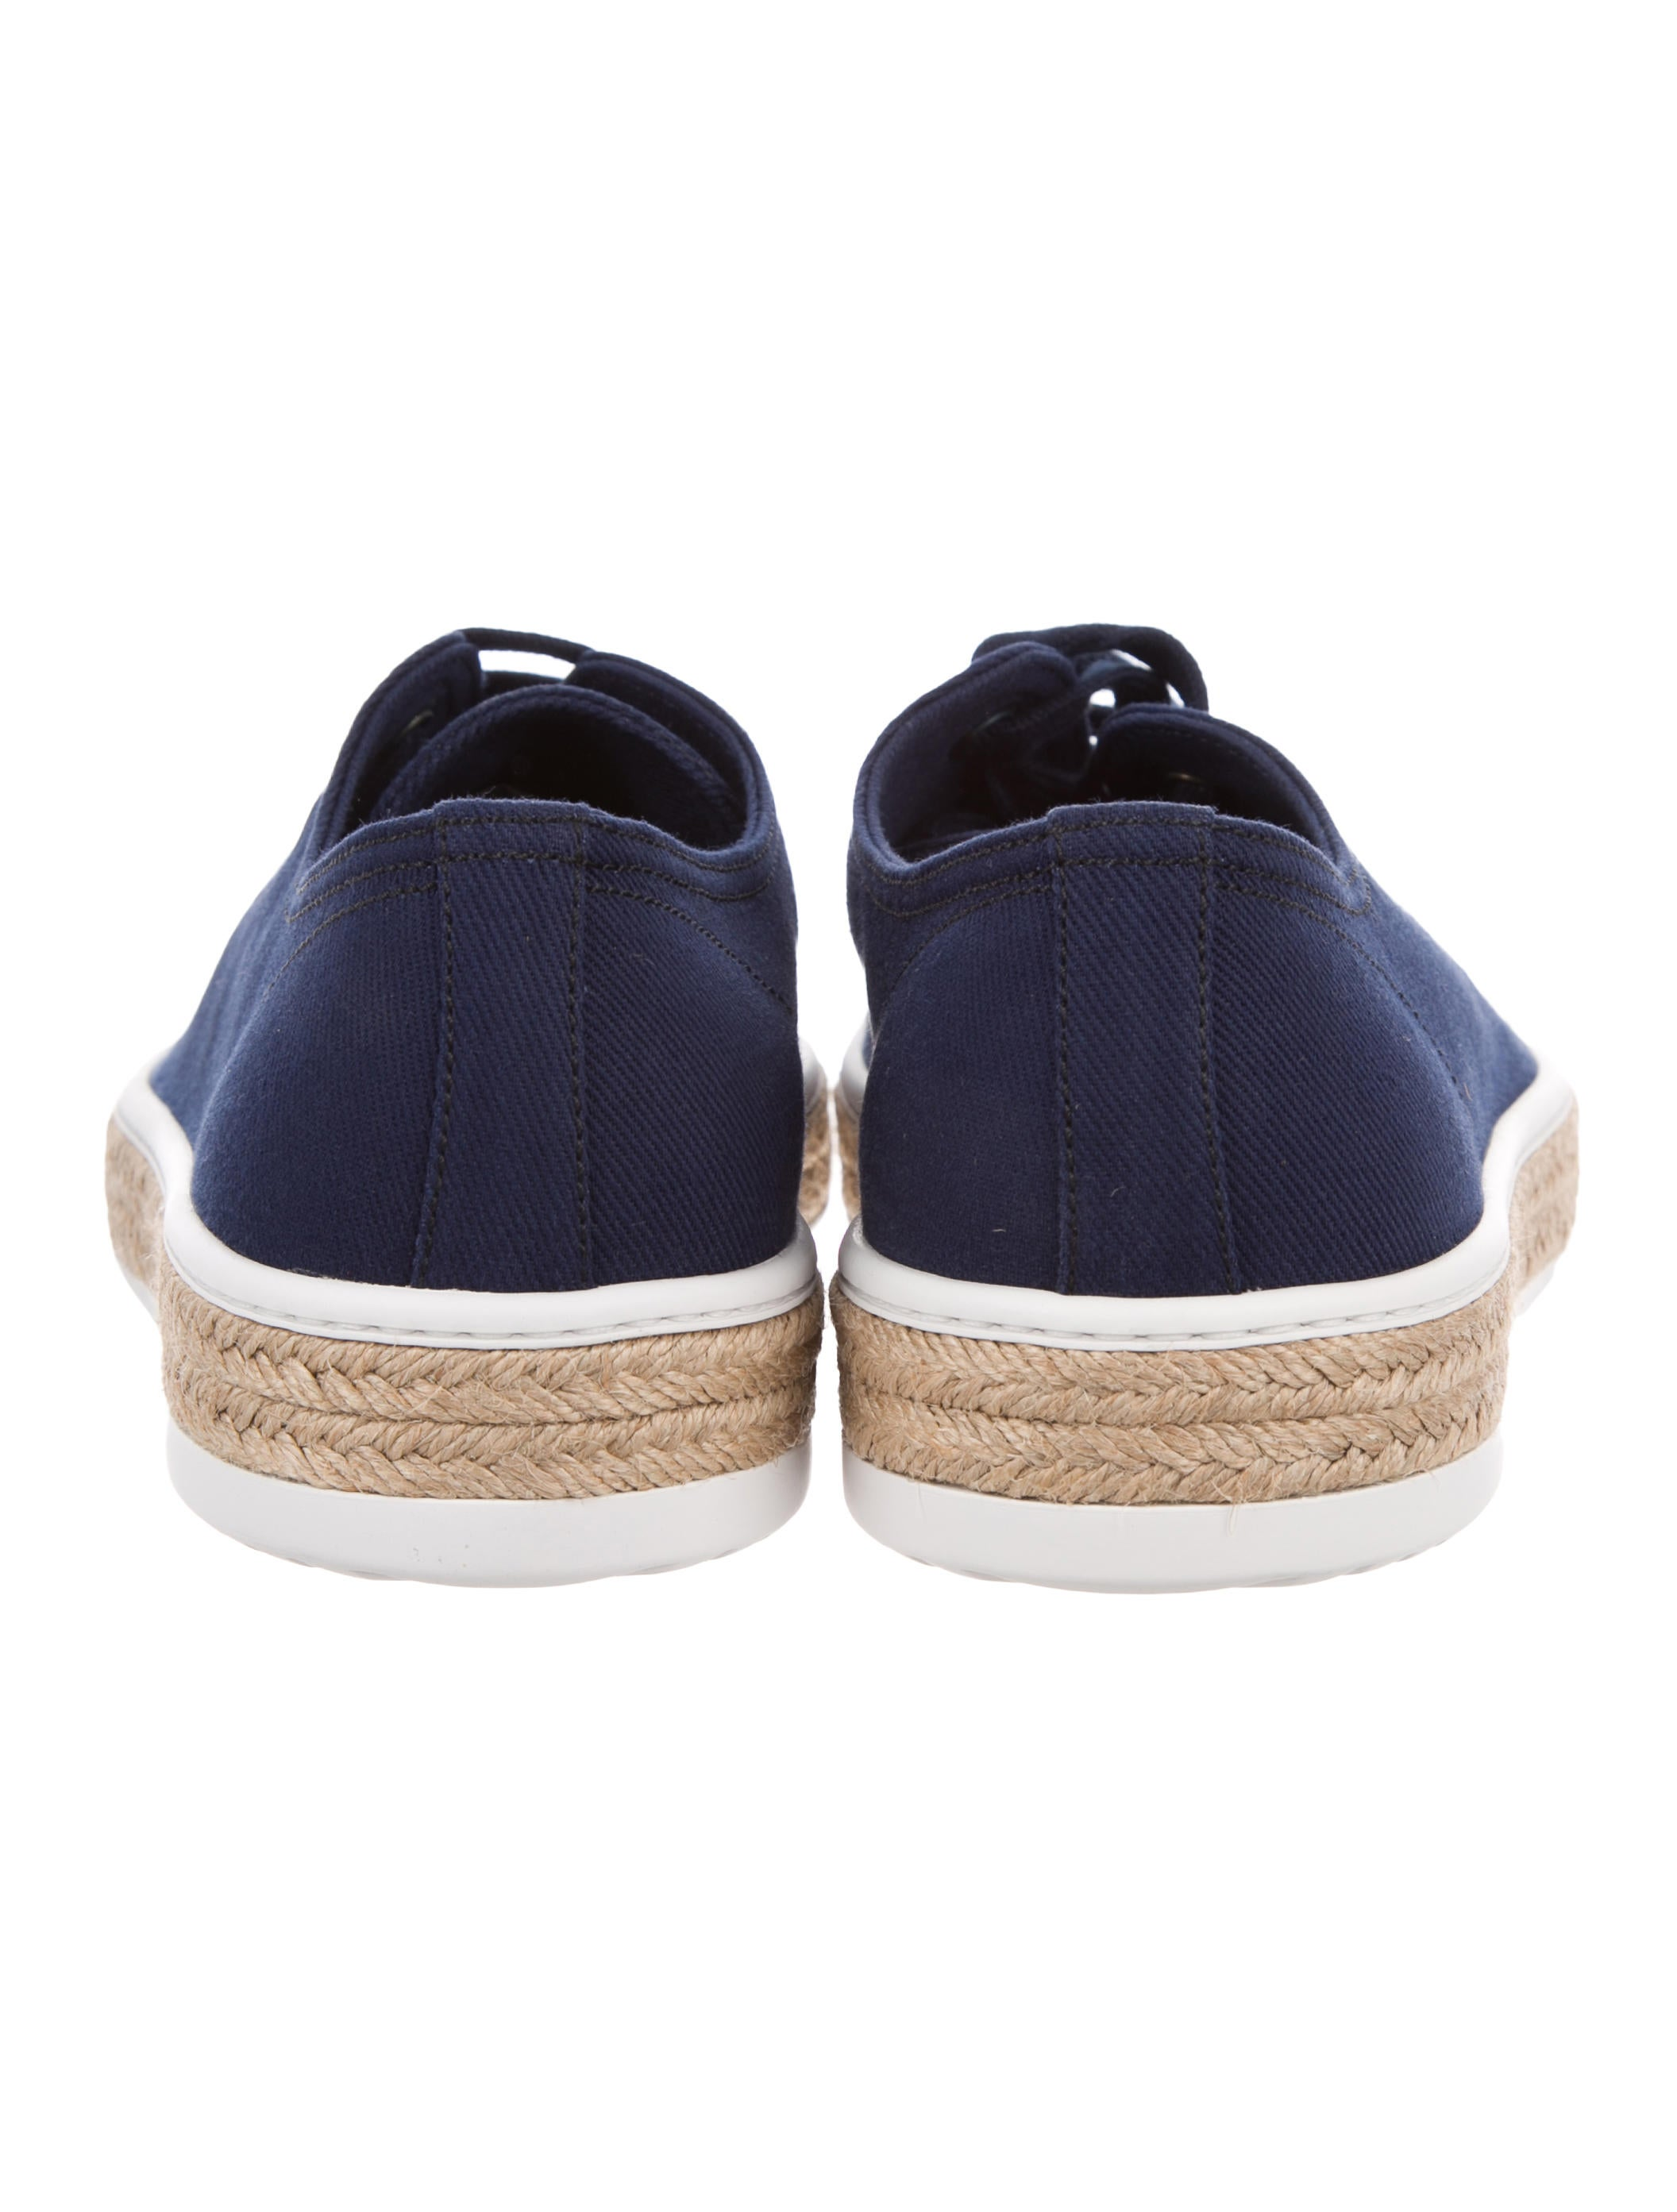 prada canvas low top sneakers w tags shoes pra103825